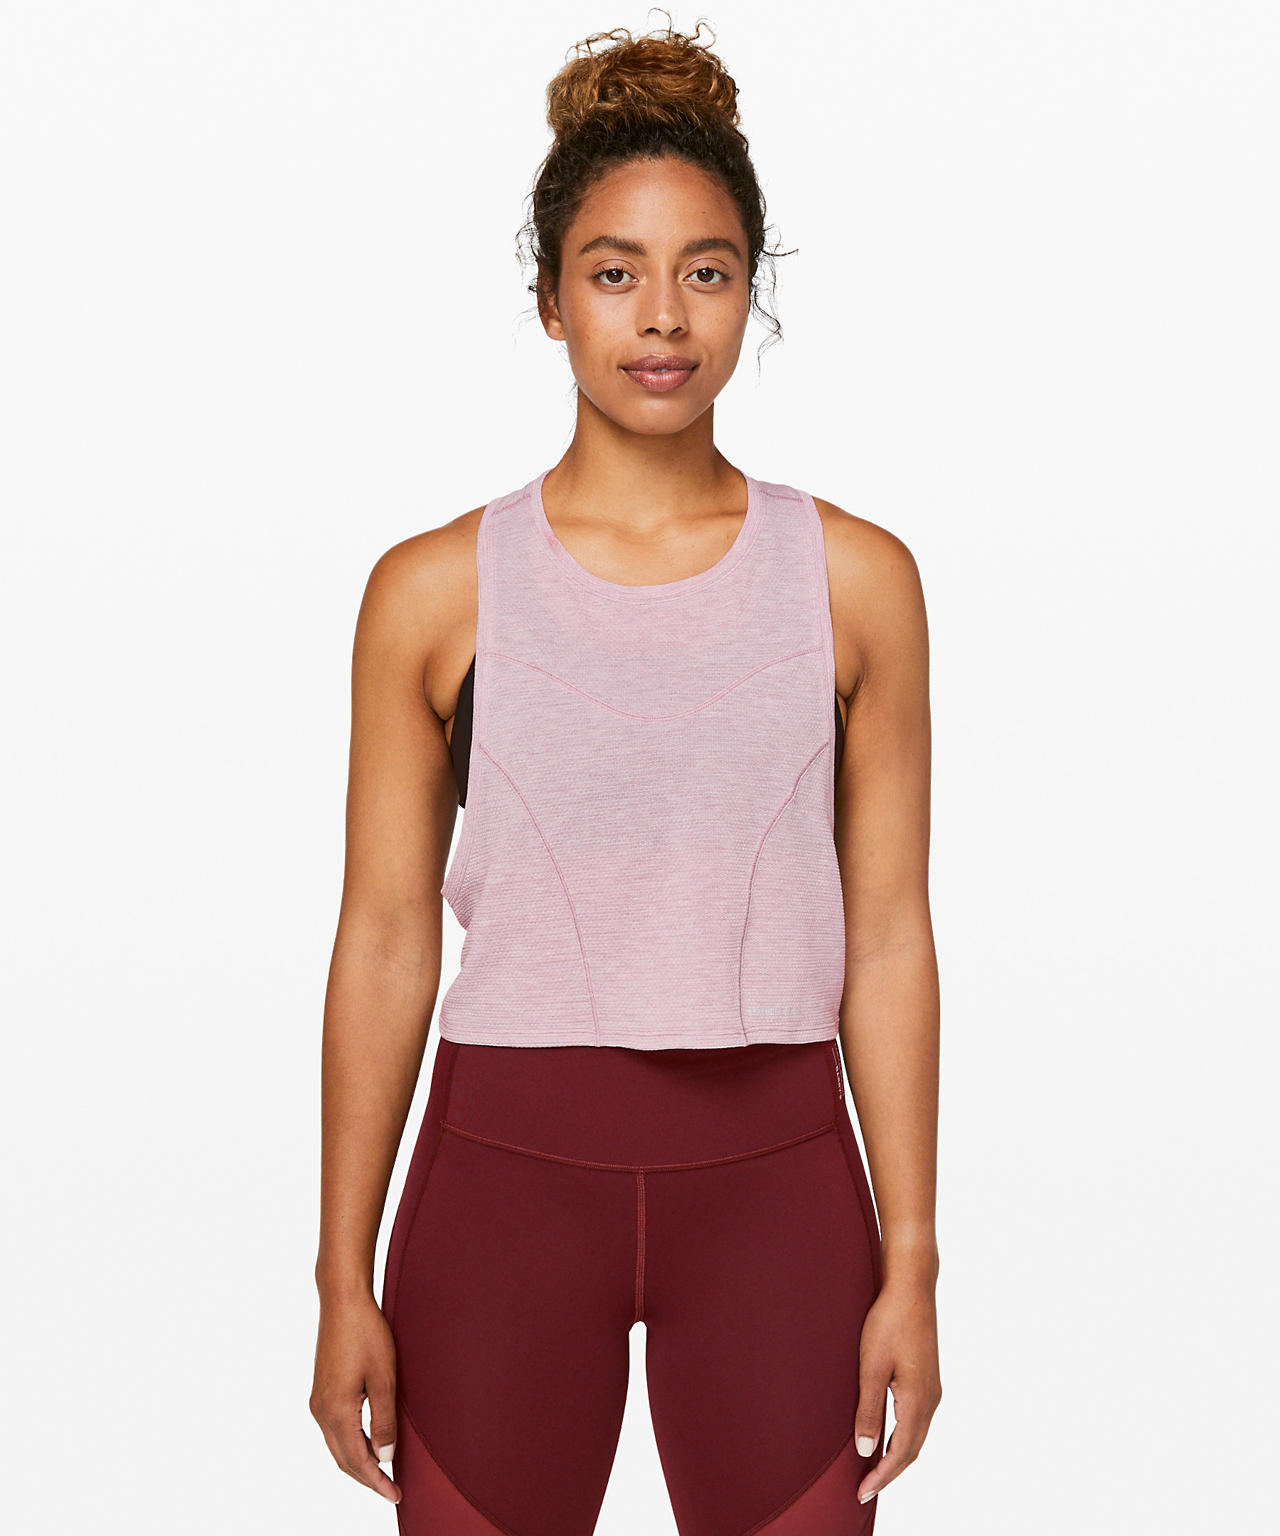 Stronger as One Muscle Tank lululemon X Barry's